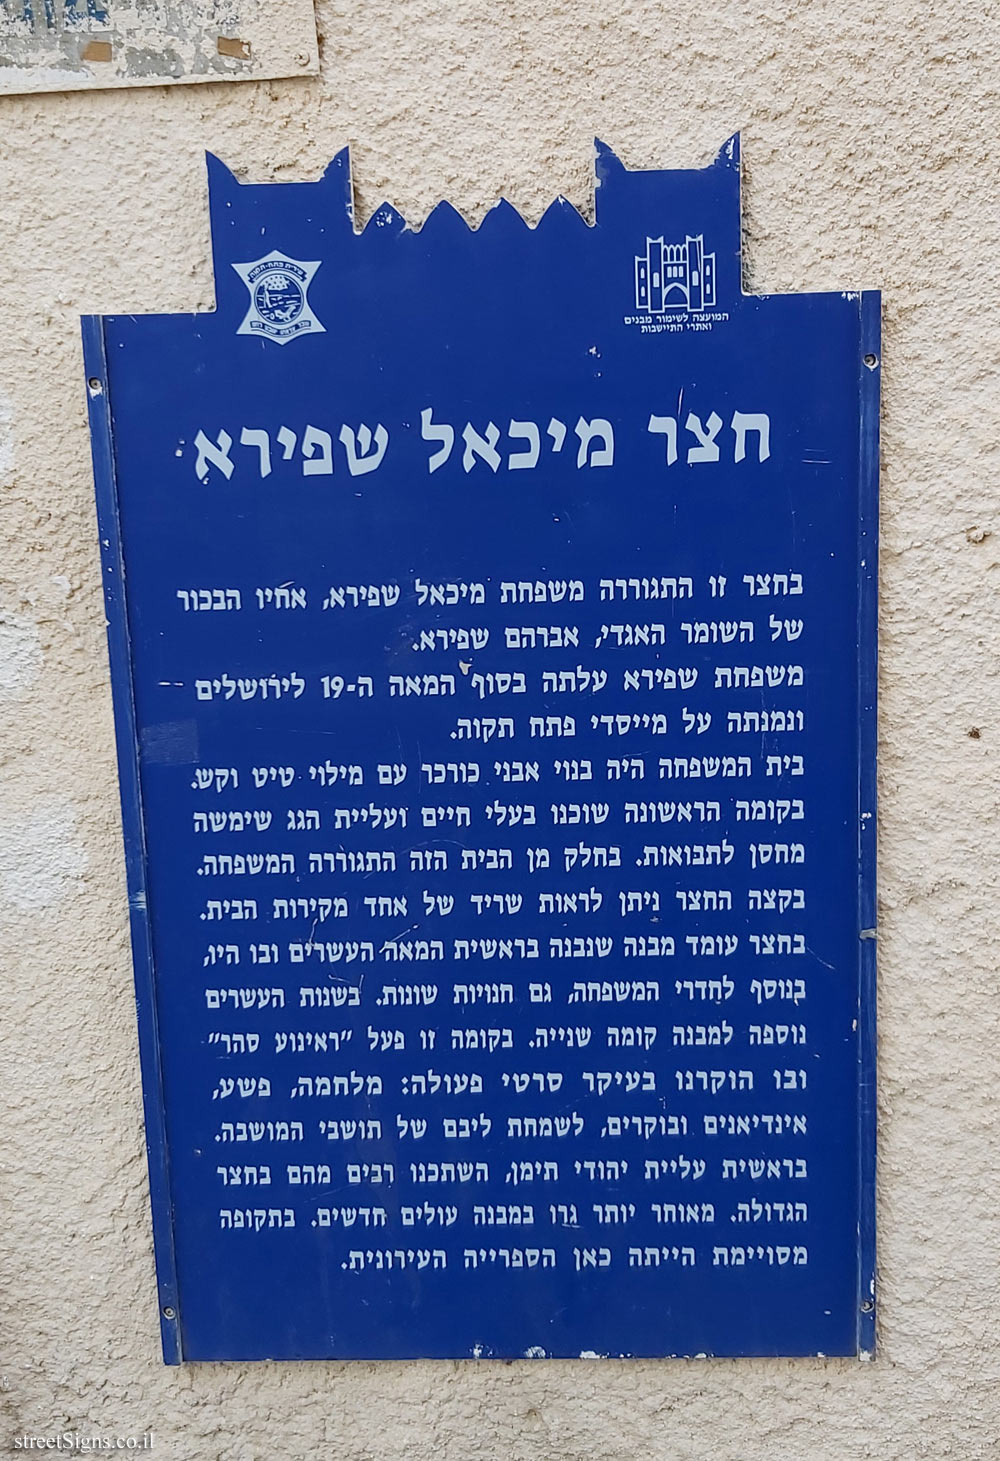 Petah Tikva - Heritage Sites in Israel - Michael Shapiro's Yard